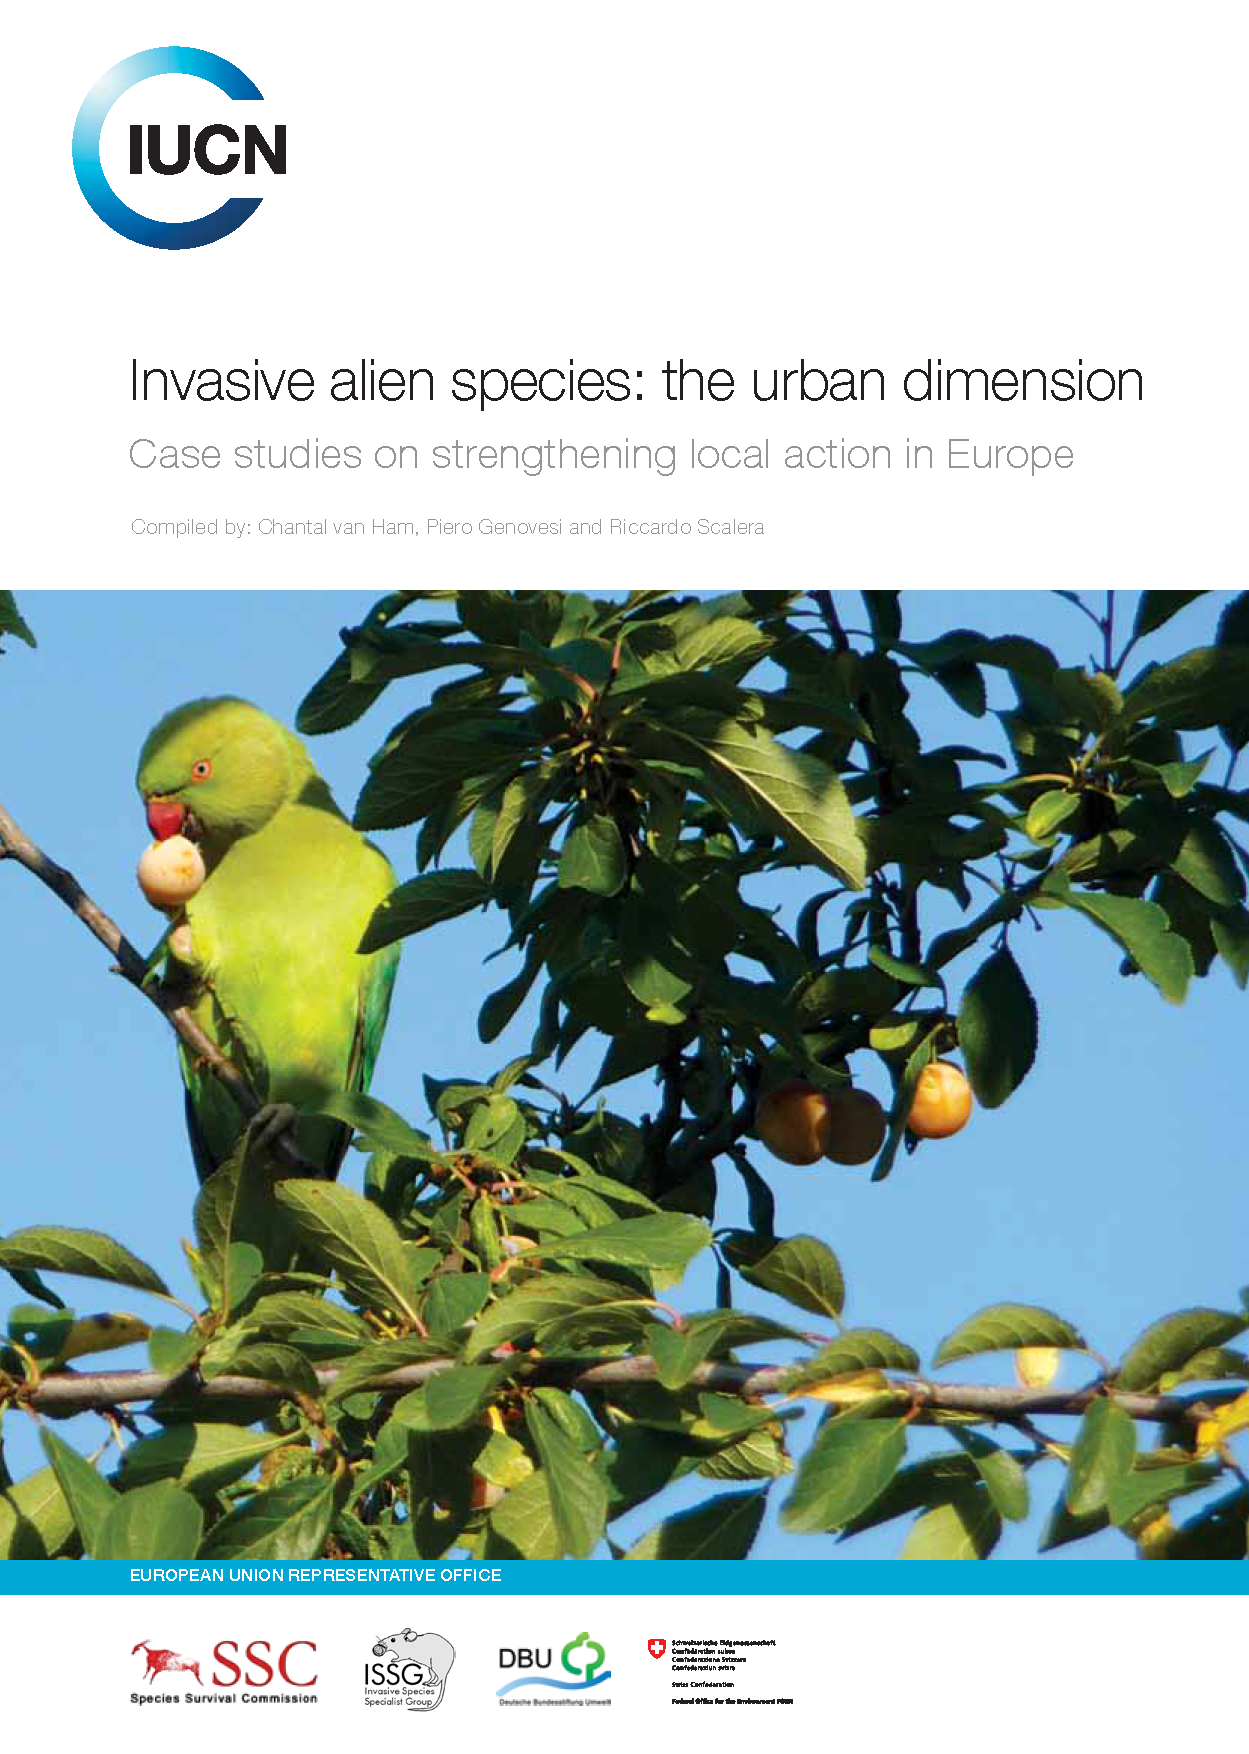 Capa da Invasive alien species: the urban dimension,